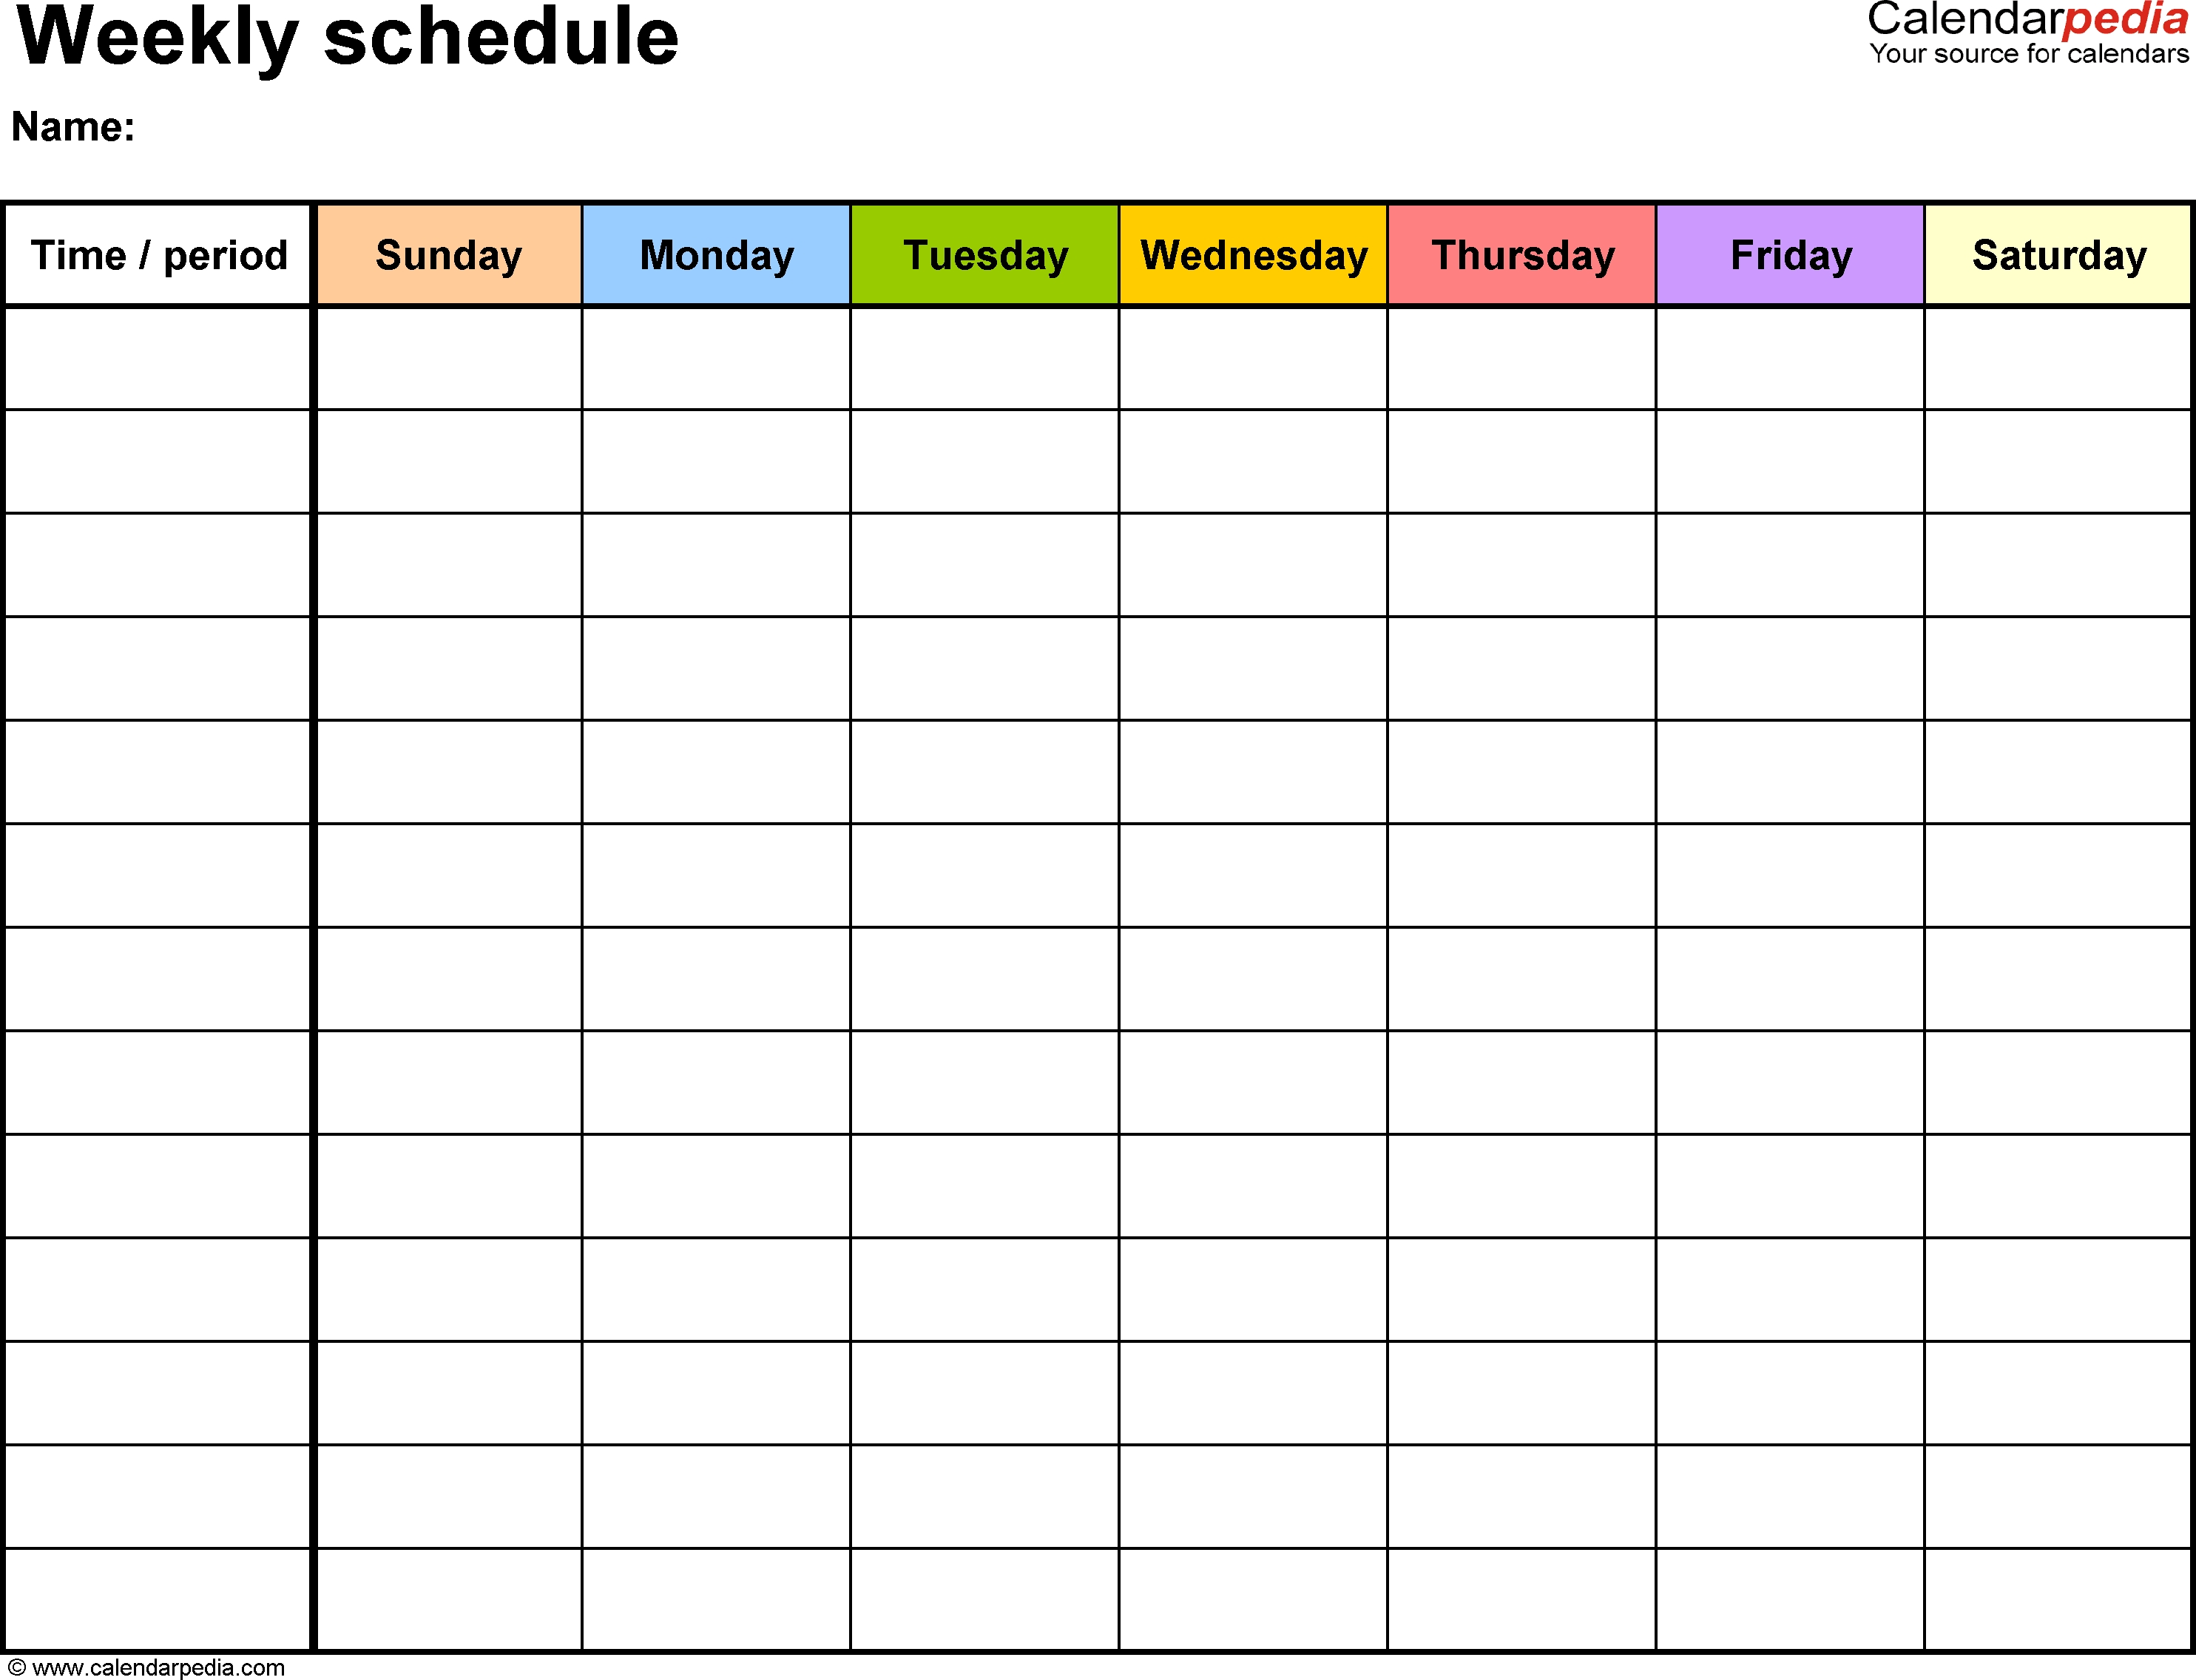 Weekly Schedule Template For Word Version 13: Landscape, 1 Blank Monday Through Friday Schedule Word